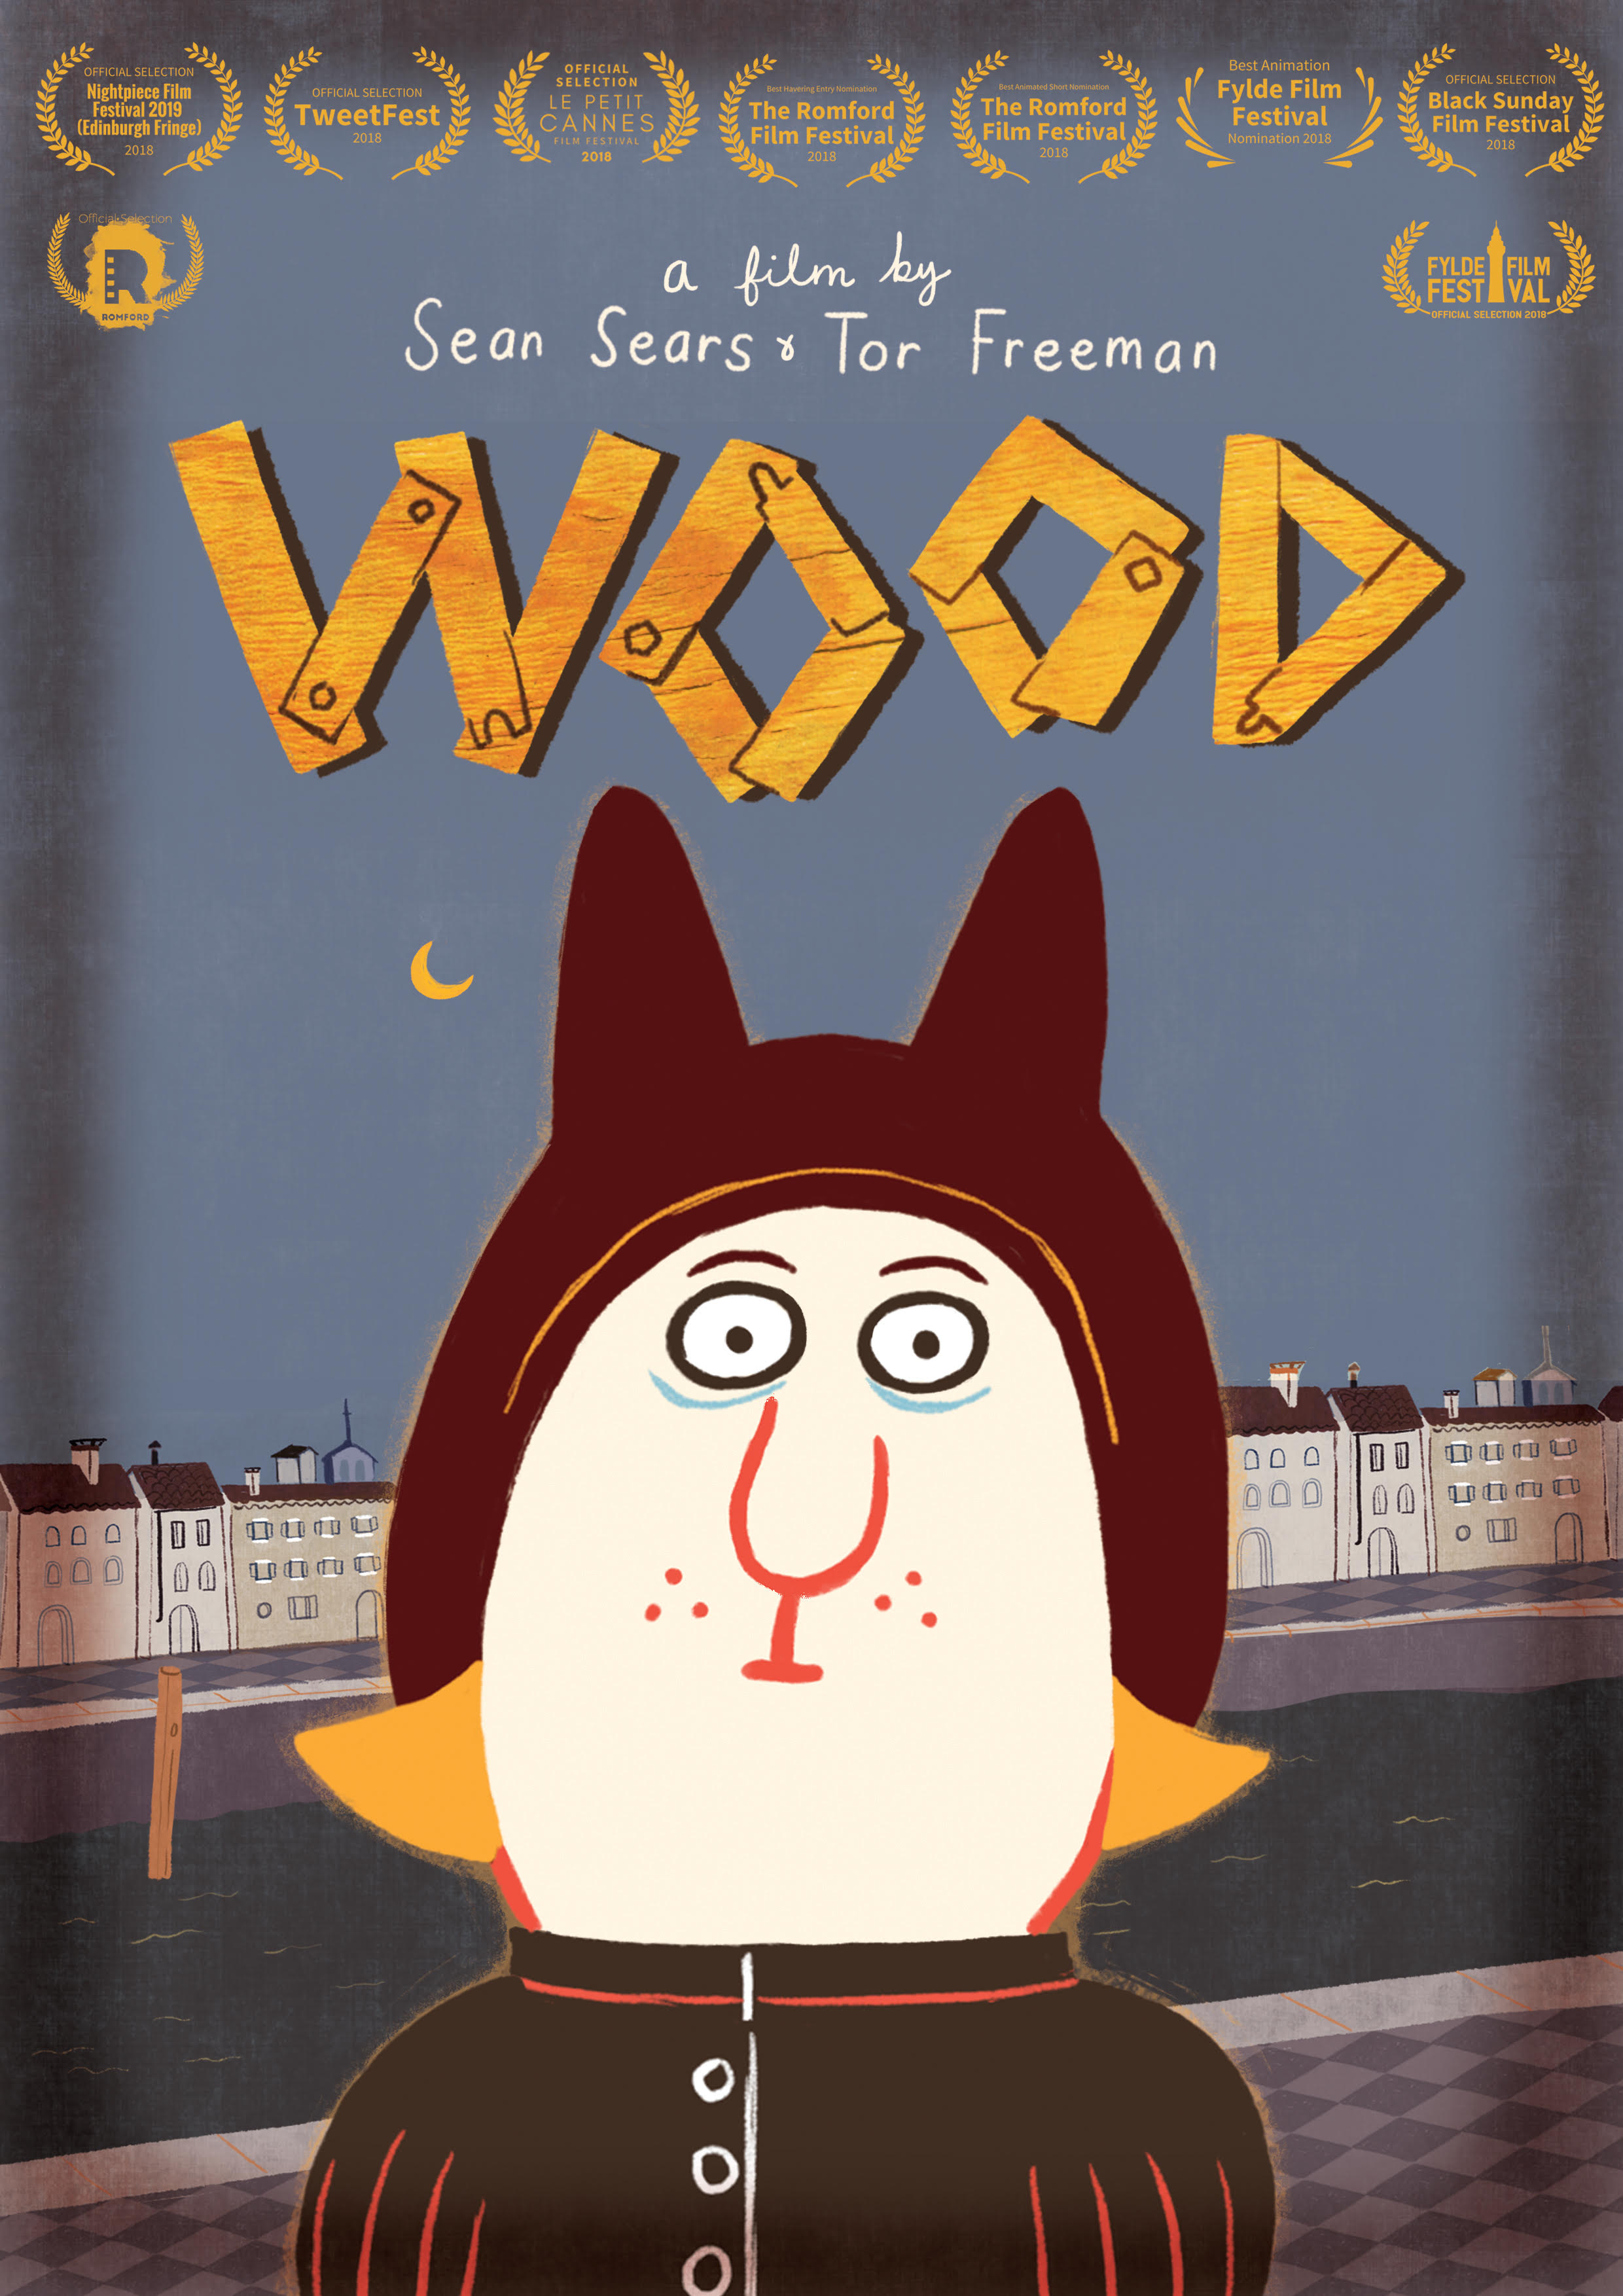 - Synopsis:In a time past, a luckless and lonely doll-maker passes his days walking the streets and canals to his shop and home again. Watching the world go by without him, he longs for the happiness others have. Could a doll of his own ease his heartache? Or will things go from bad to worse?Wood is an eerie animated fairytale about guilt and loneliness, and the past coming back to haunt you.